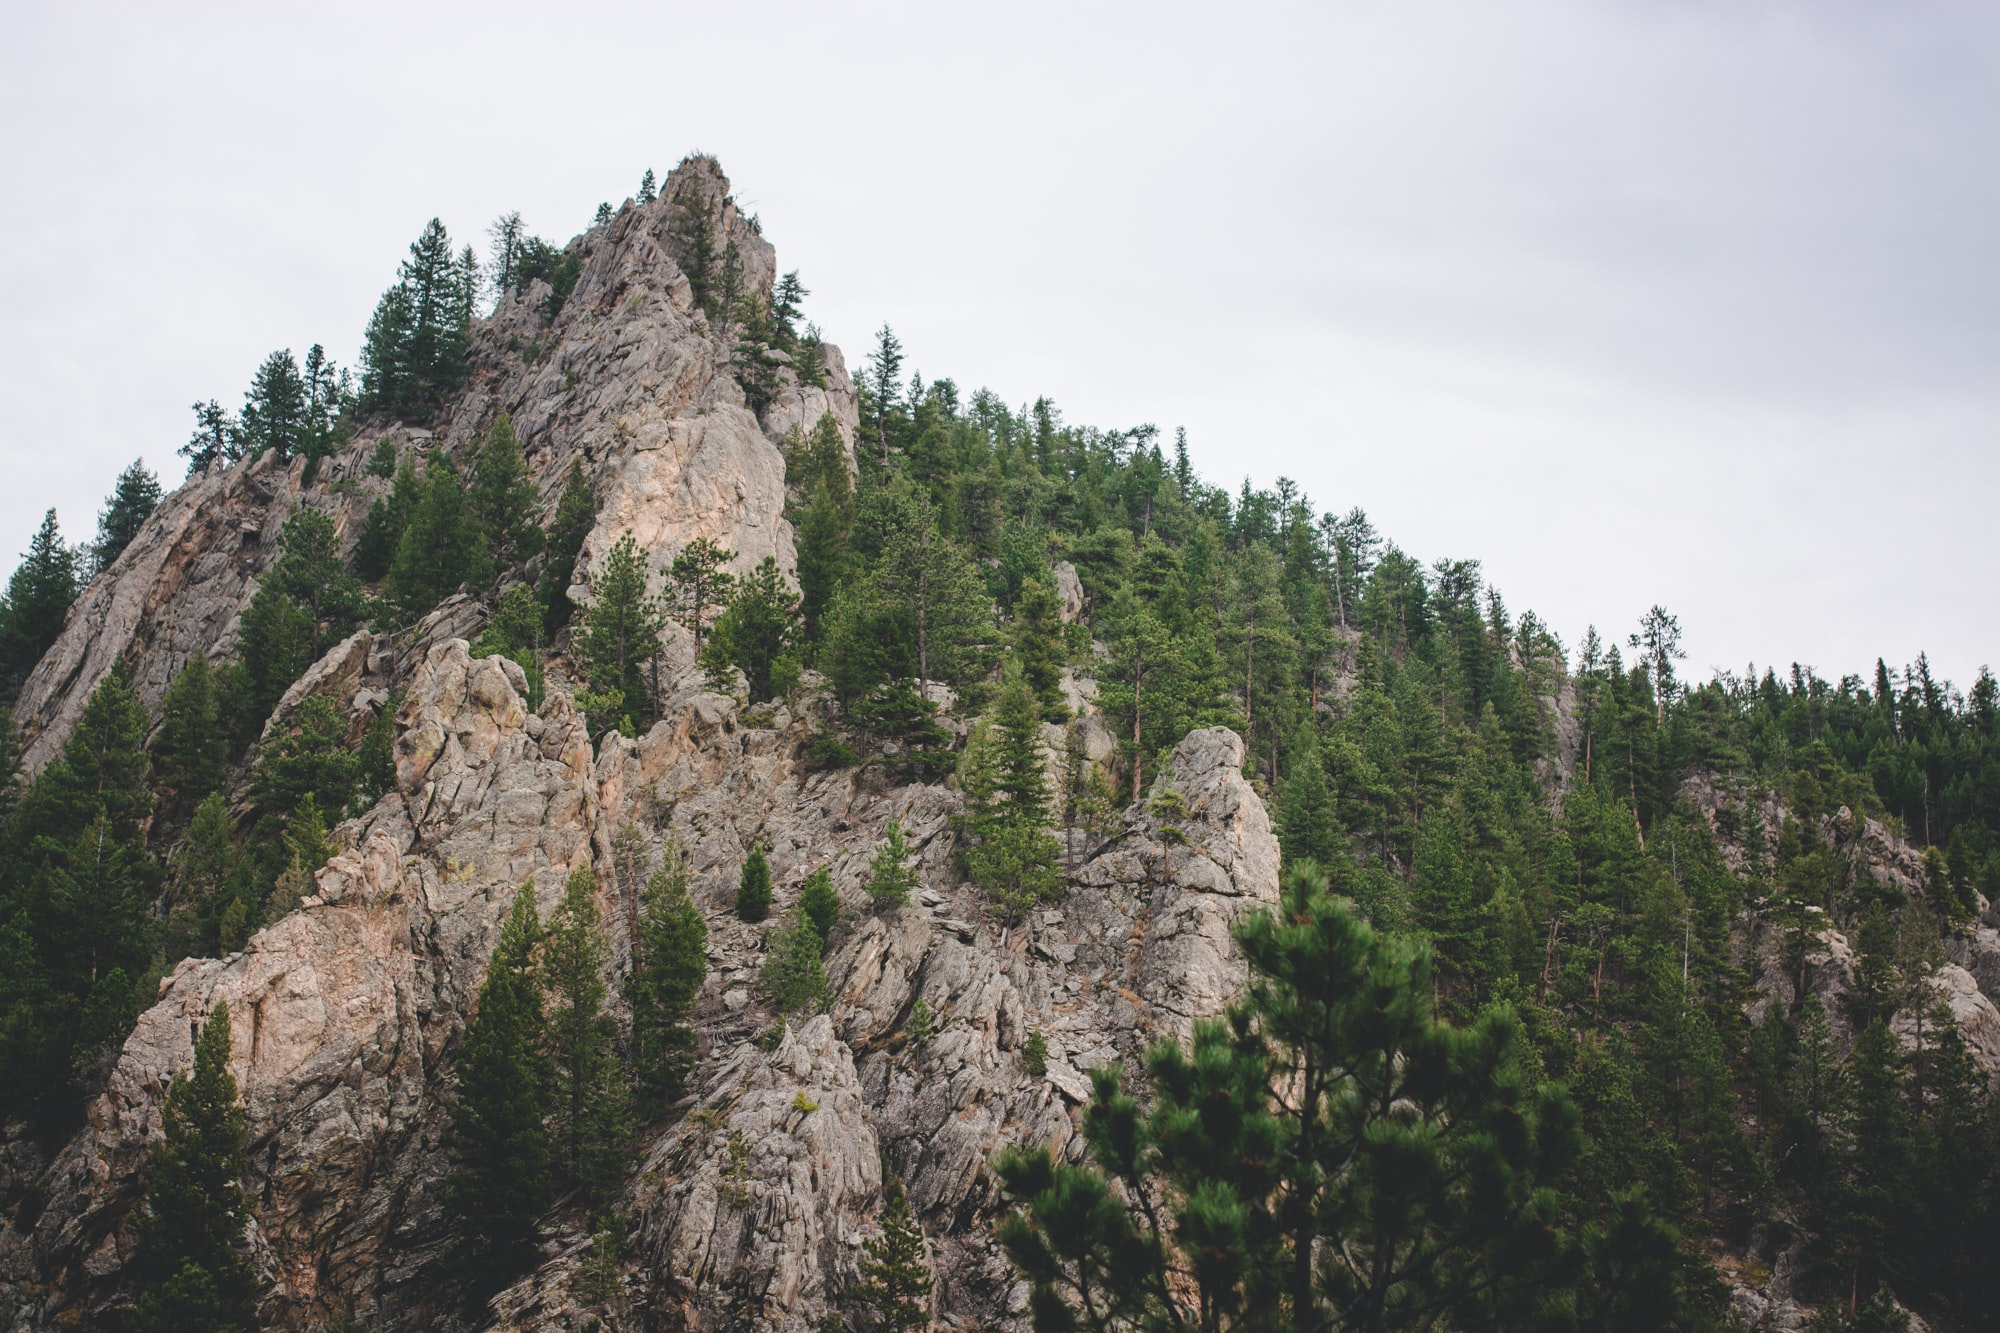 A low mountain with a jagged peak and wooded slopes in Colorado